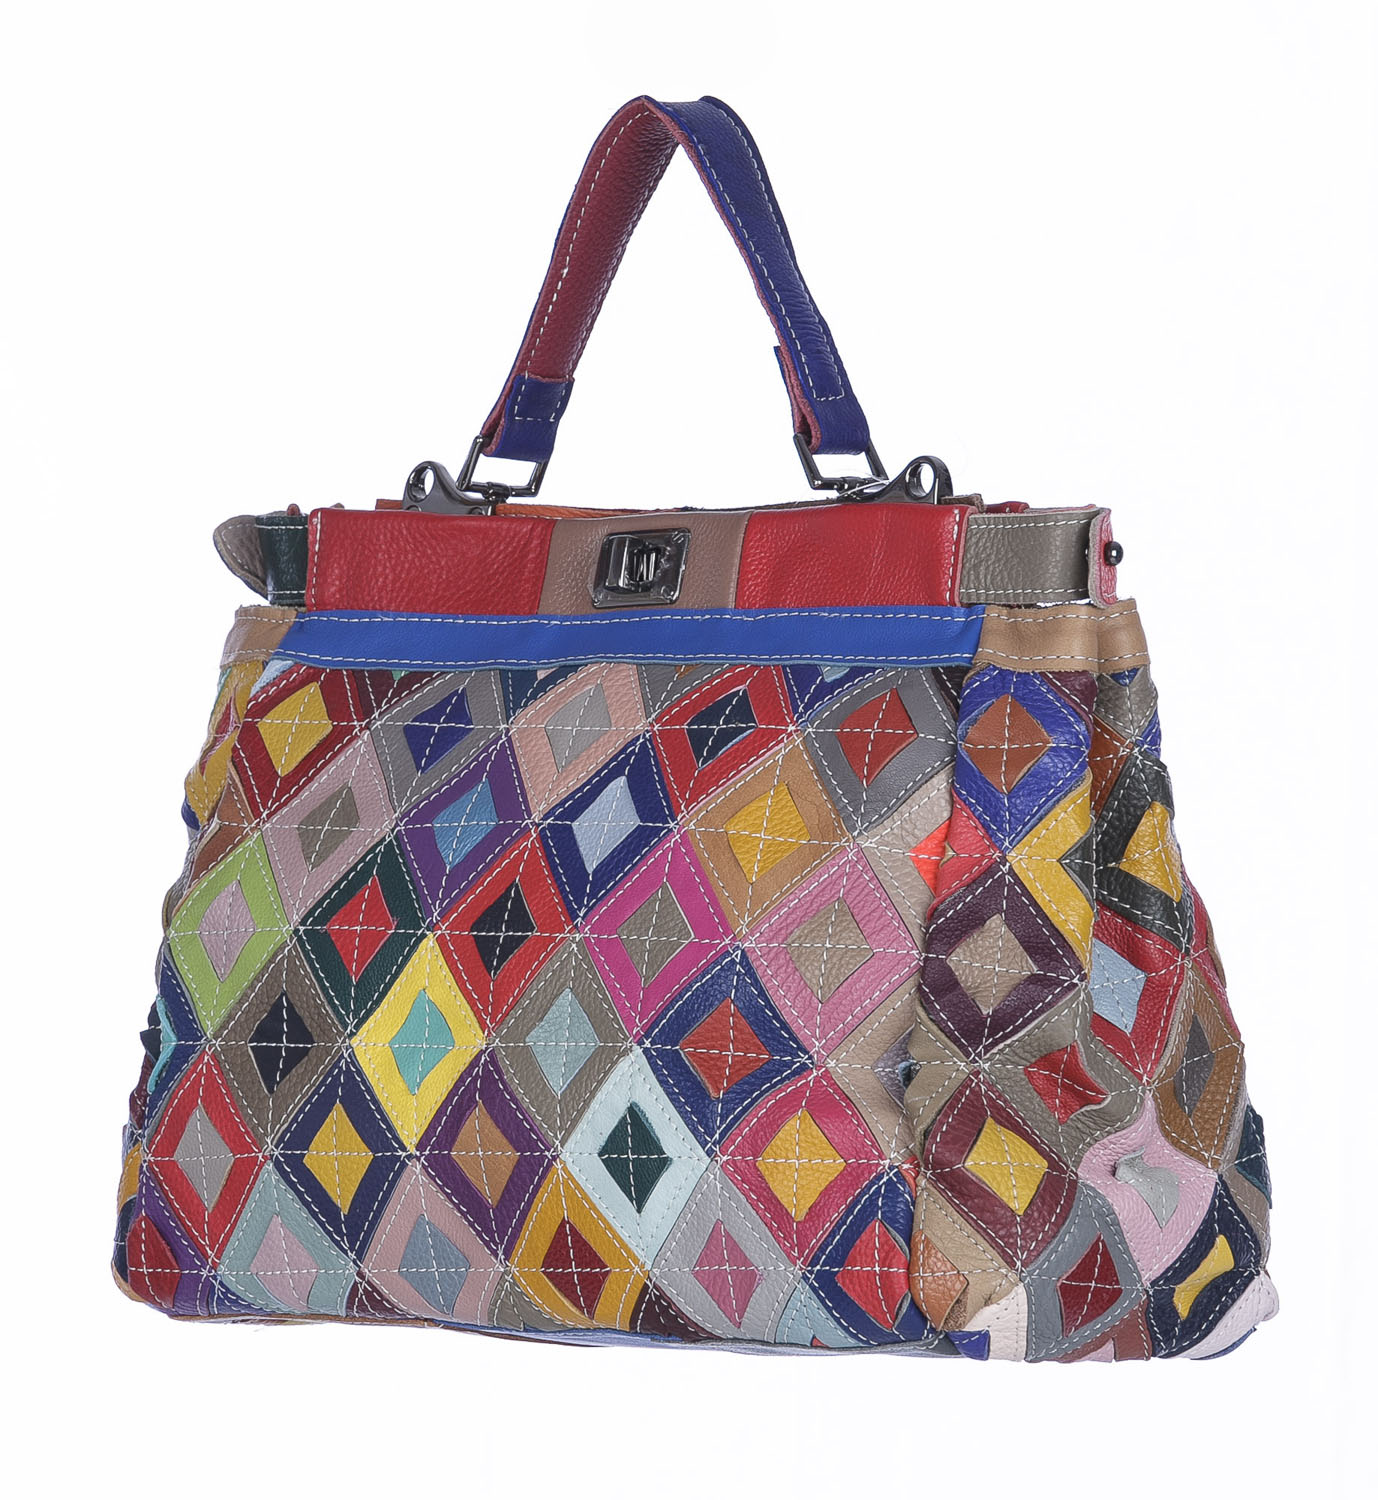 Borsa a mano donna ELIANA, in vera pelle morbida sauvage, MULTICOLORE, ARIANNA DINI, Made in Italy